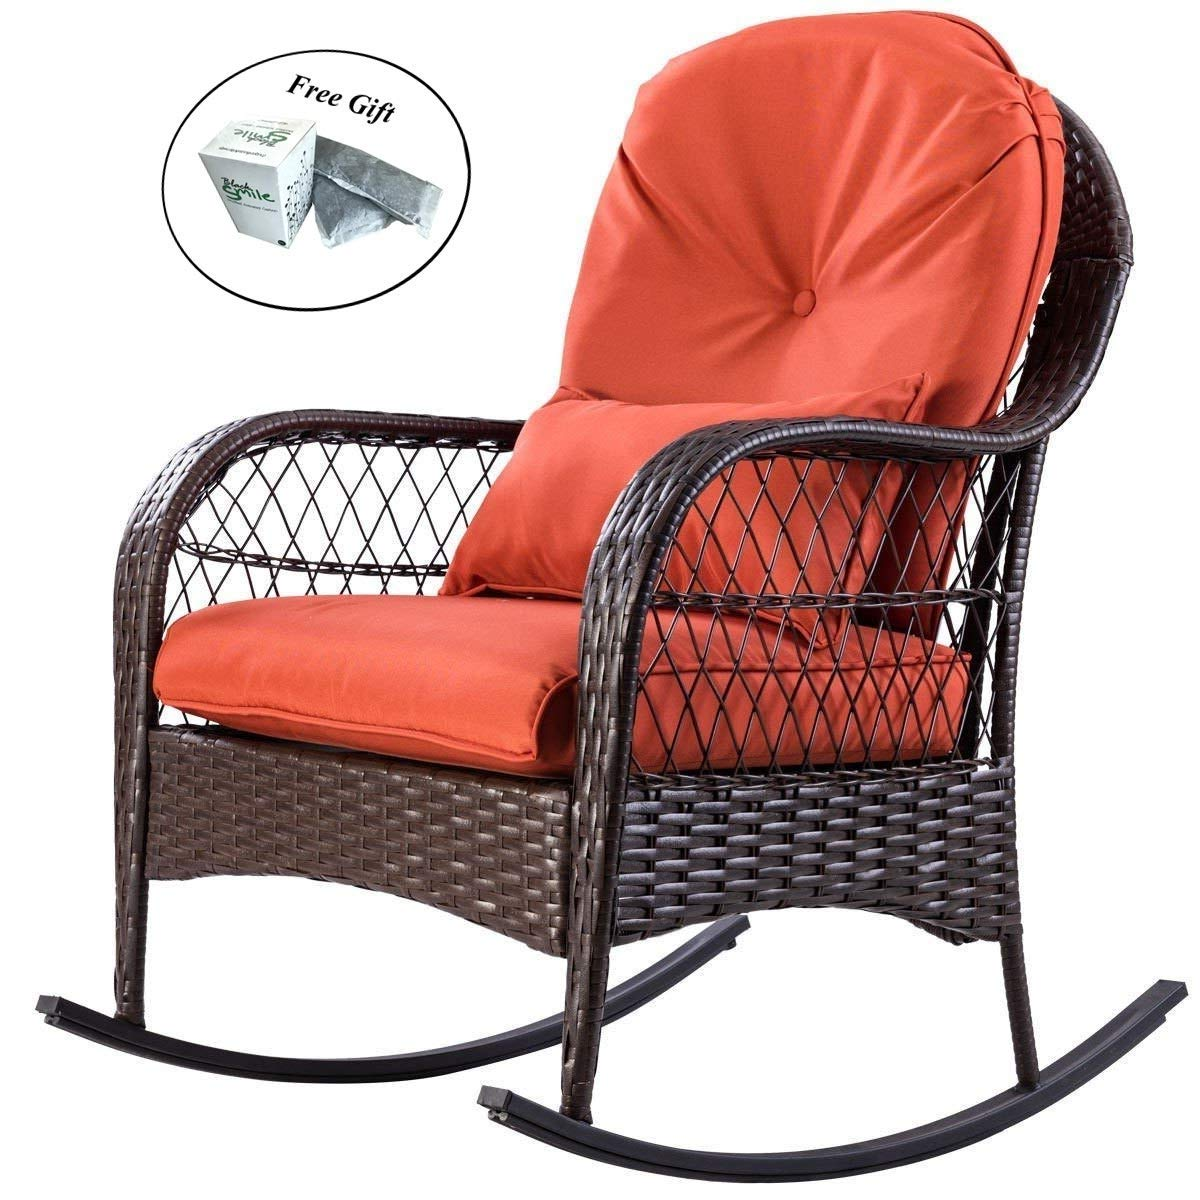 Marvelous Ai Deck Chair Rattan Folding Chairs Office Lunch Break Chair Gmtry Best Dining Table And Chair Ideas Images Gmtryco